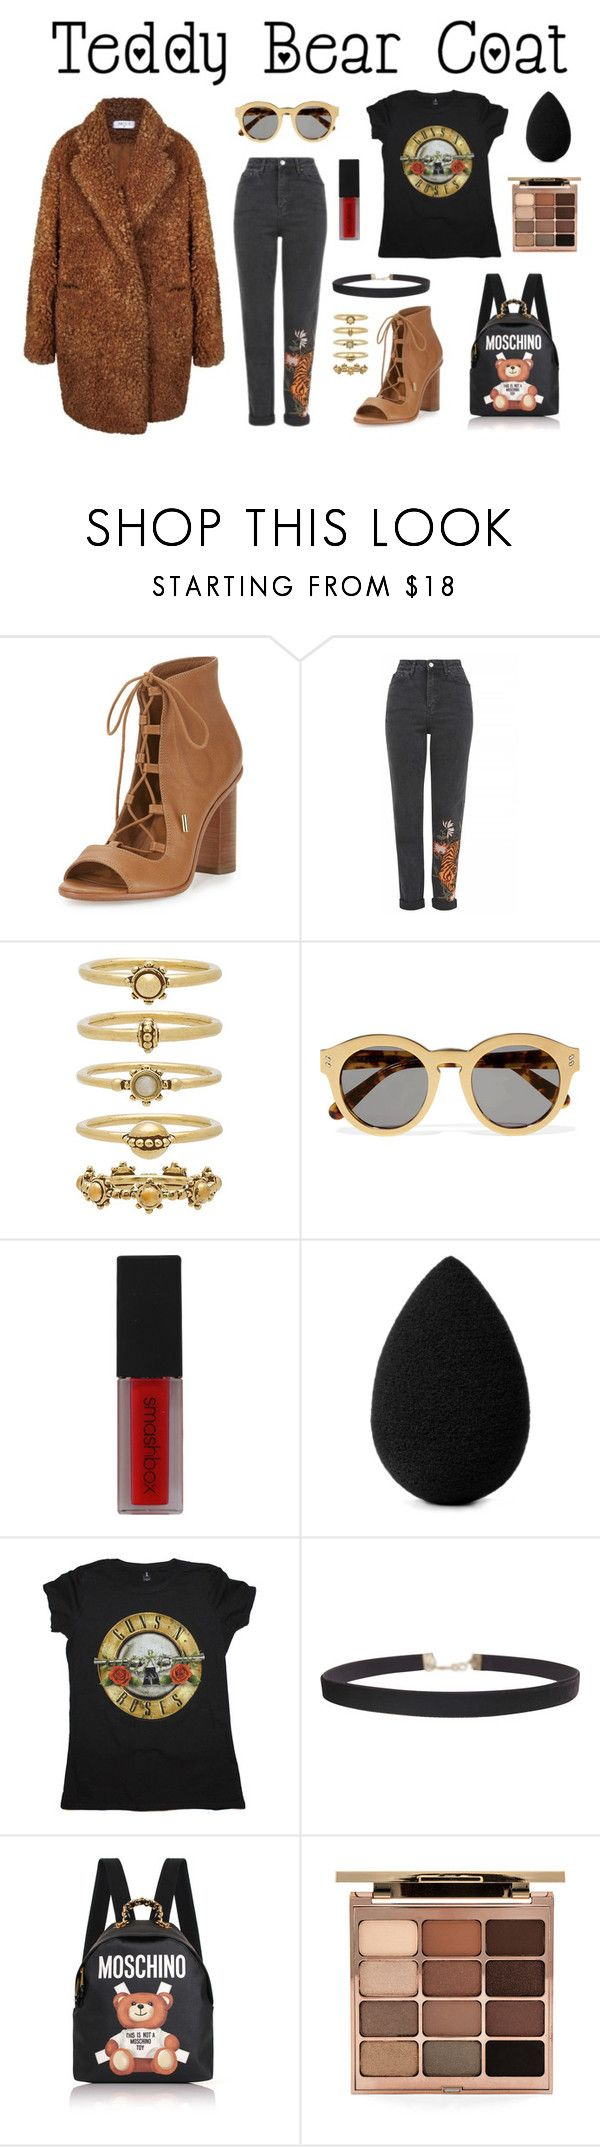 """""""casual"""" by lanagur on Polyvore featuring мода, Joie, Topshop, Luv Aj, STELLA McCARTNEY, Smashbox, beautyblender, Humble Chic, Moschino и Stila"""